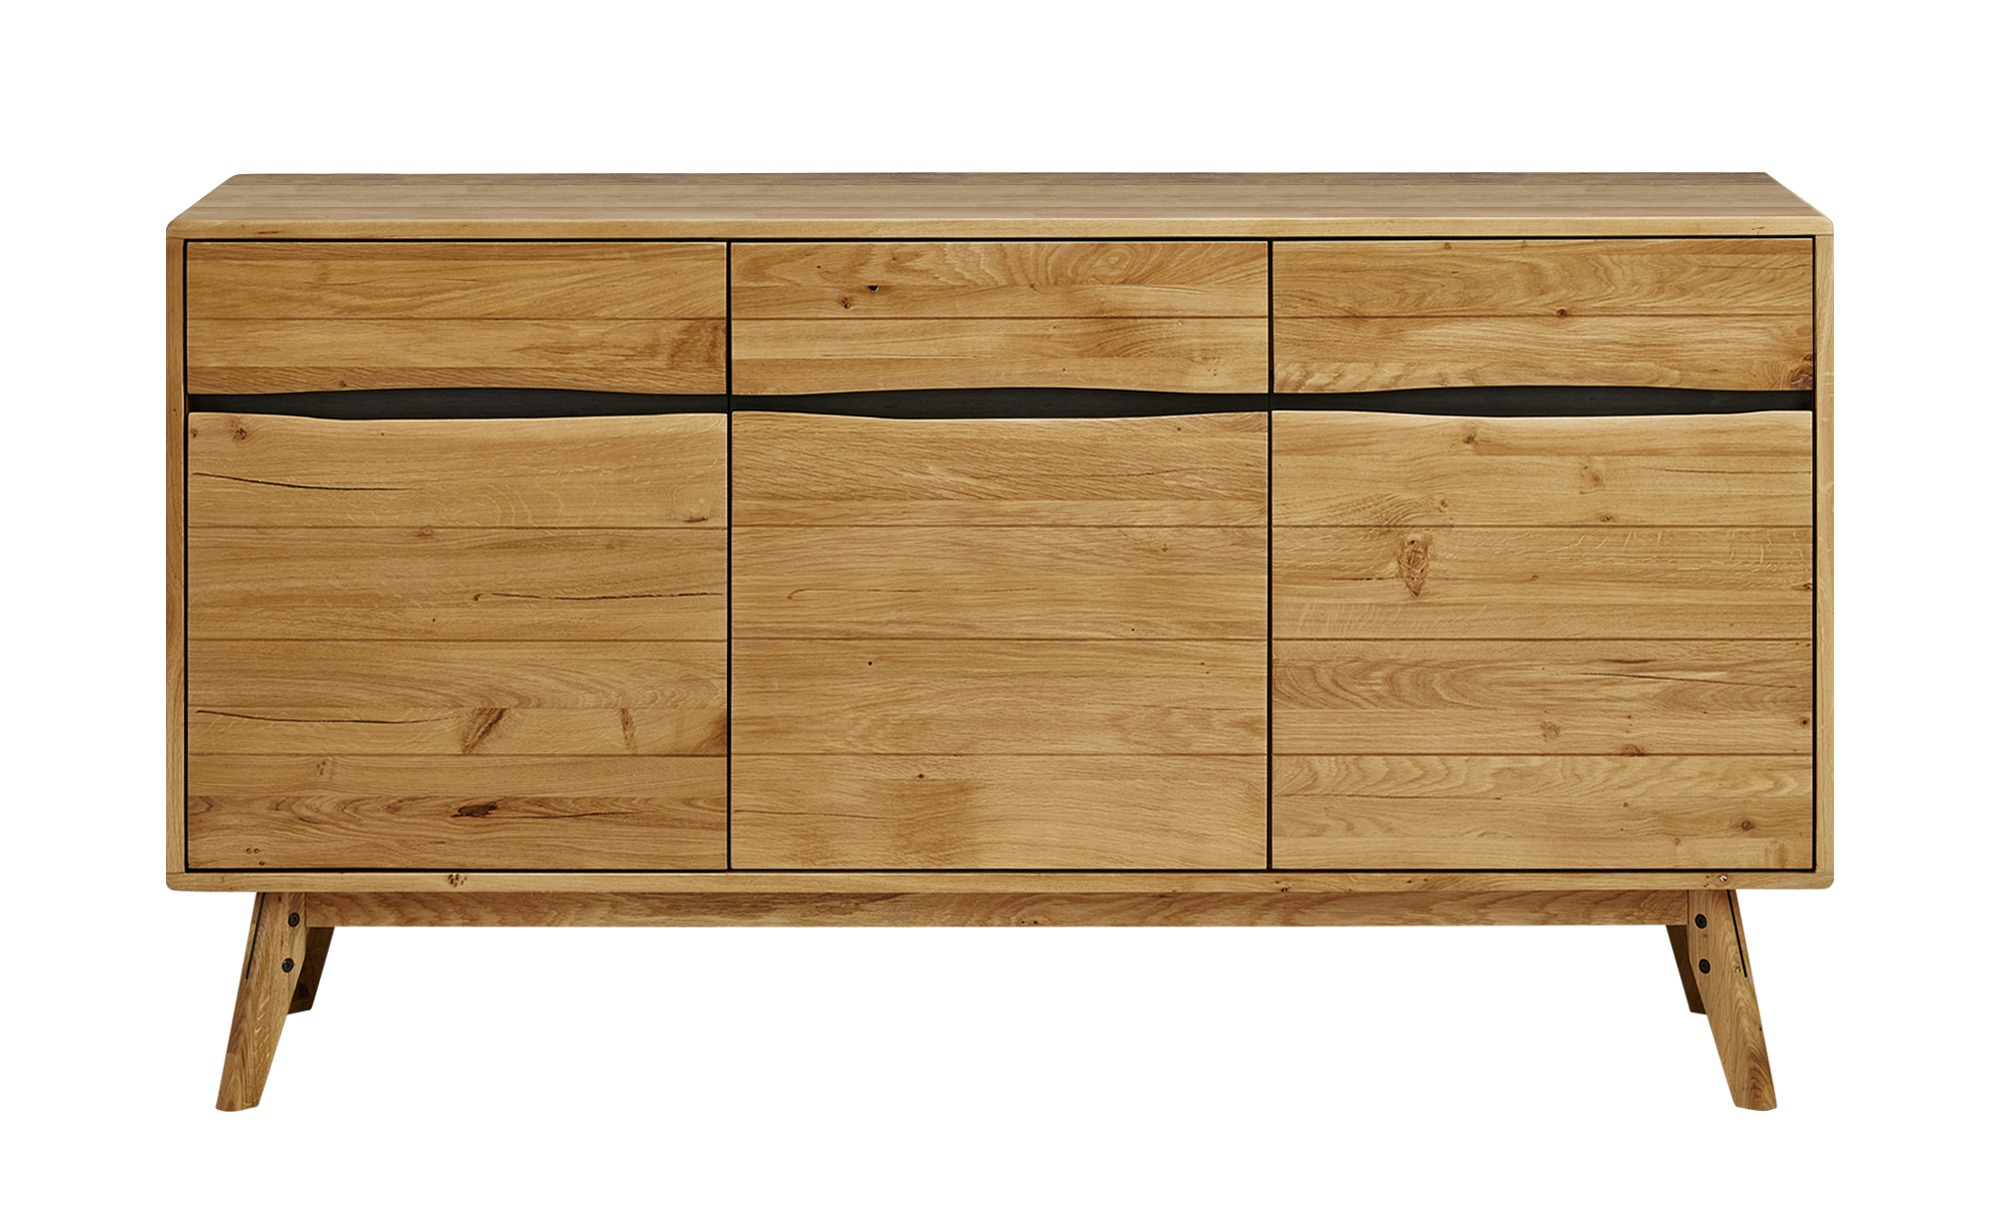 sideboard cinnamon breite 160 cm h he 88 cm holzfarben online kaufen bei woonio. Black Bedroom Furniture Sets. Home Design Ideas